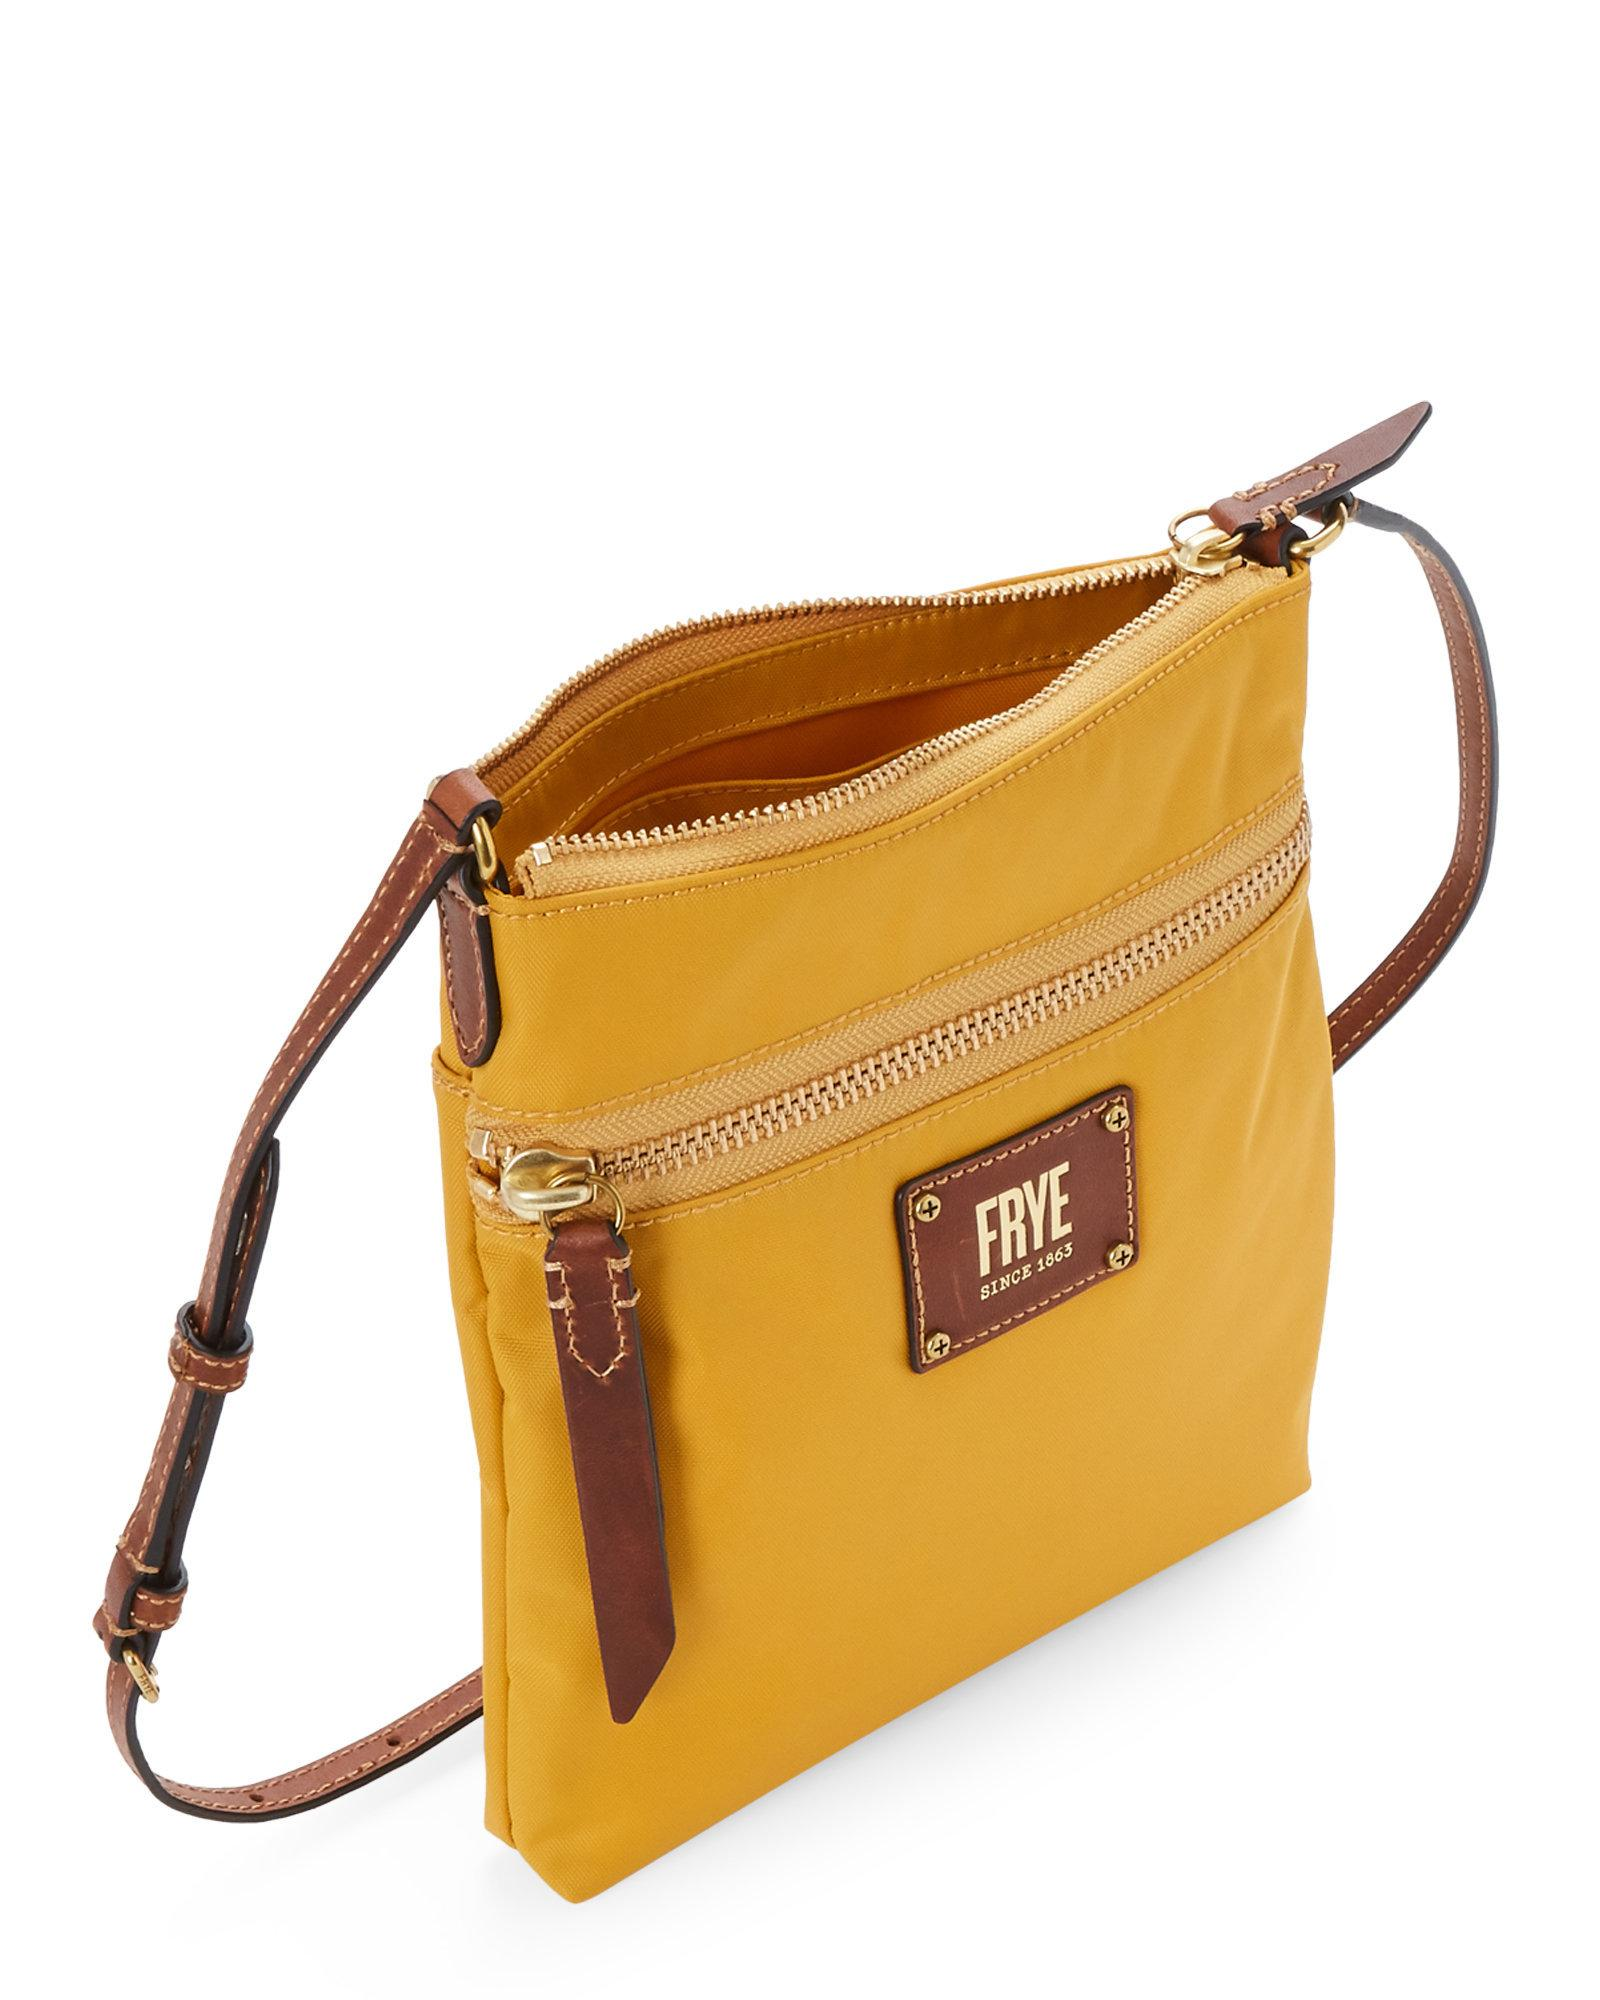 b823cb3b0d80 Lyst - Frye Yellow Ivy Nylon Crossbody in Yellow - Save 21.590909090909093%